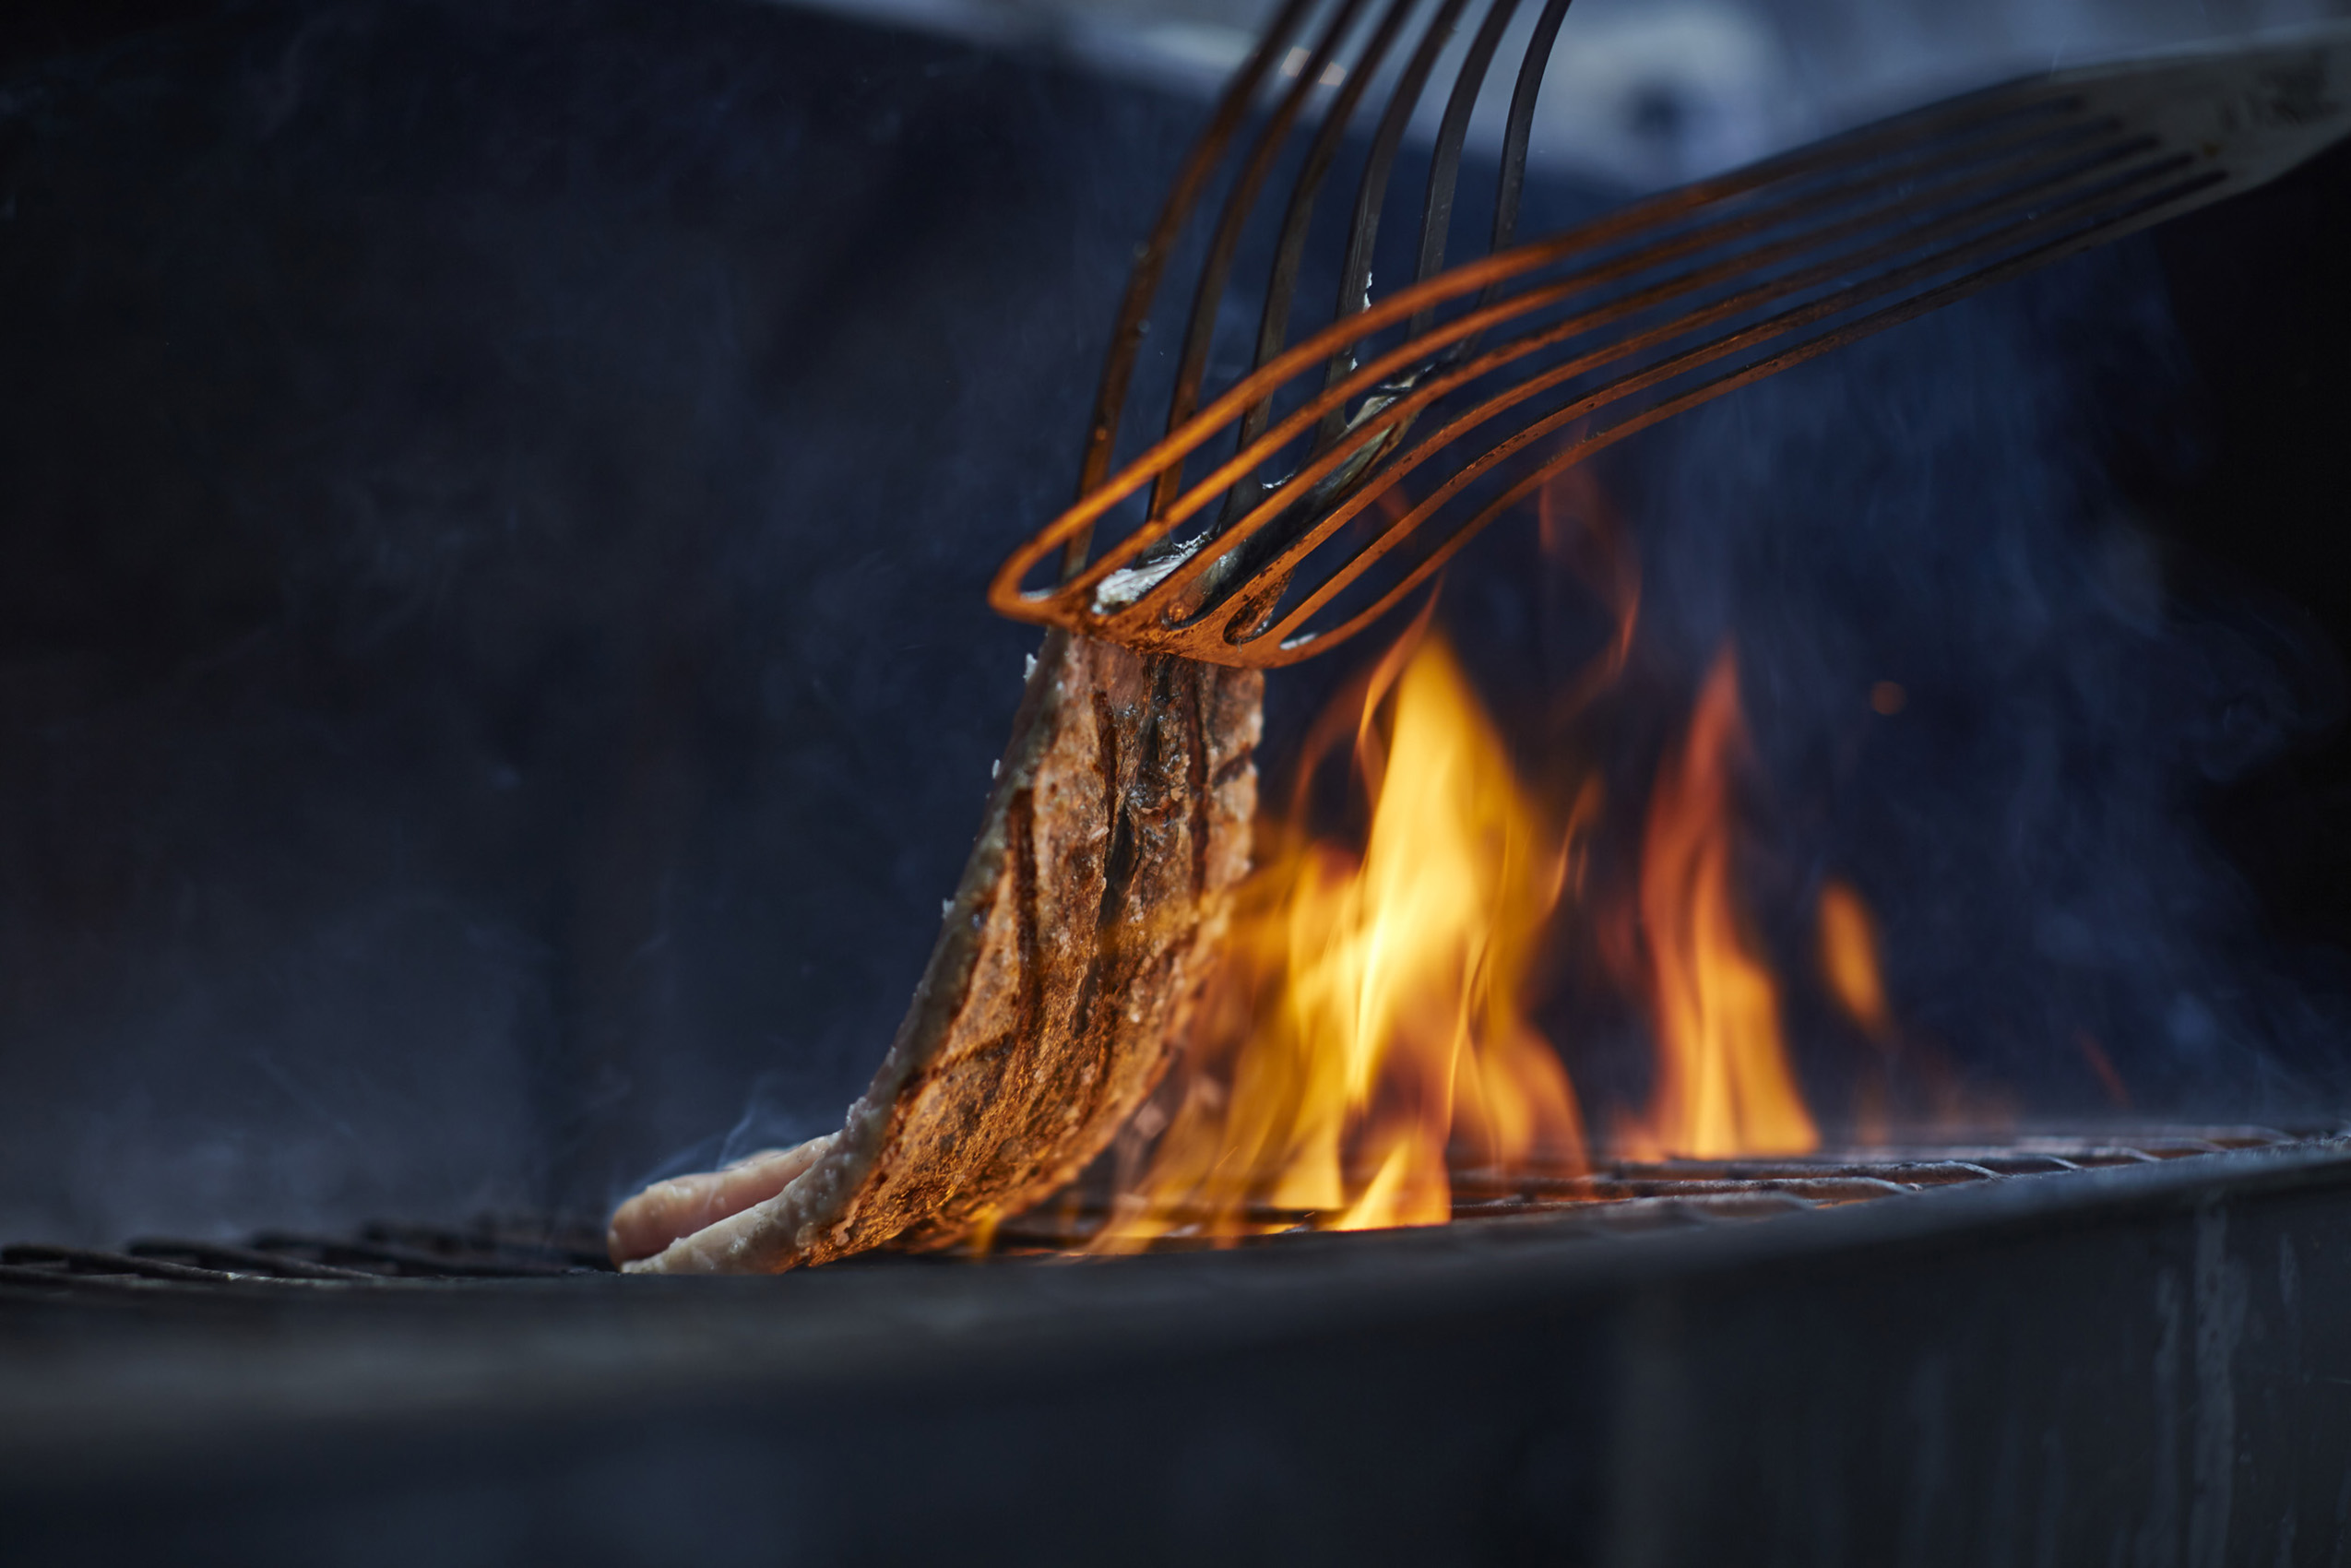 SteveRyan_Photographer_Reportage_Mackerel_Grill_Fire_66